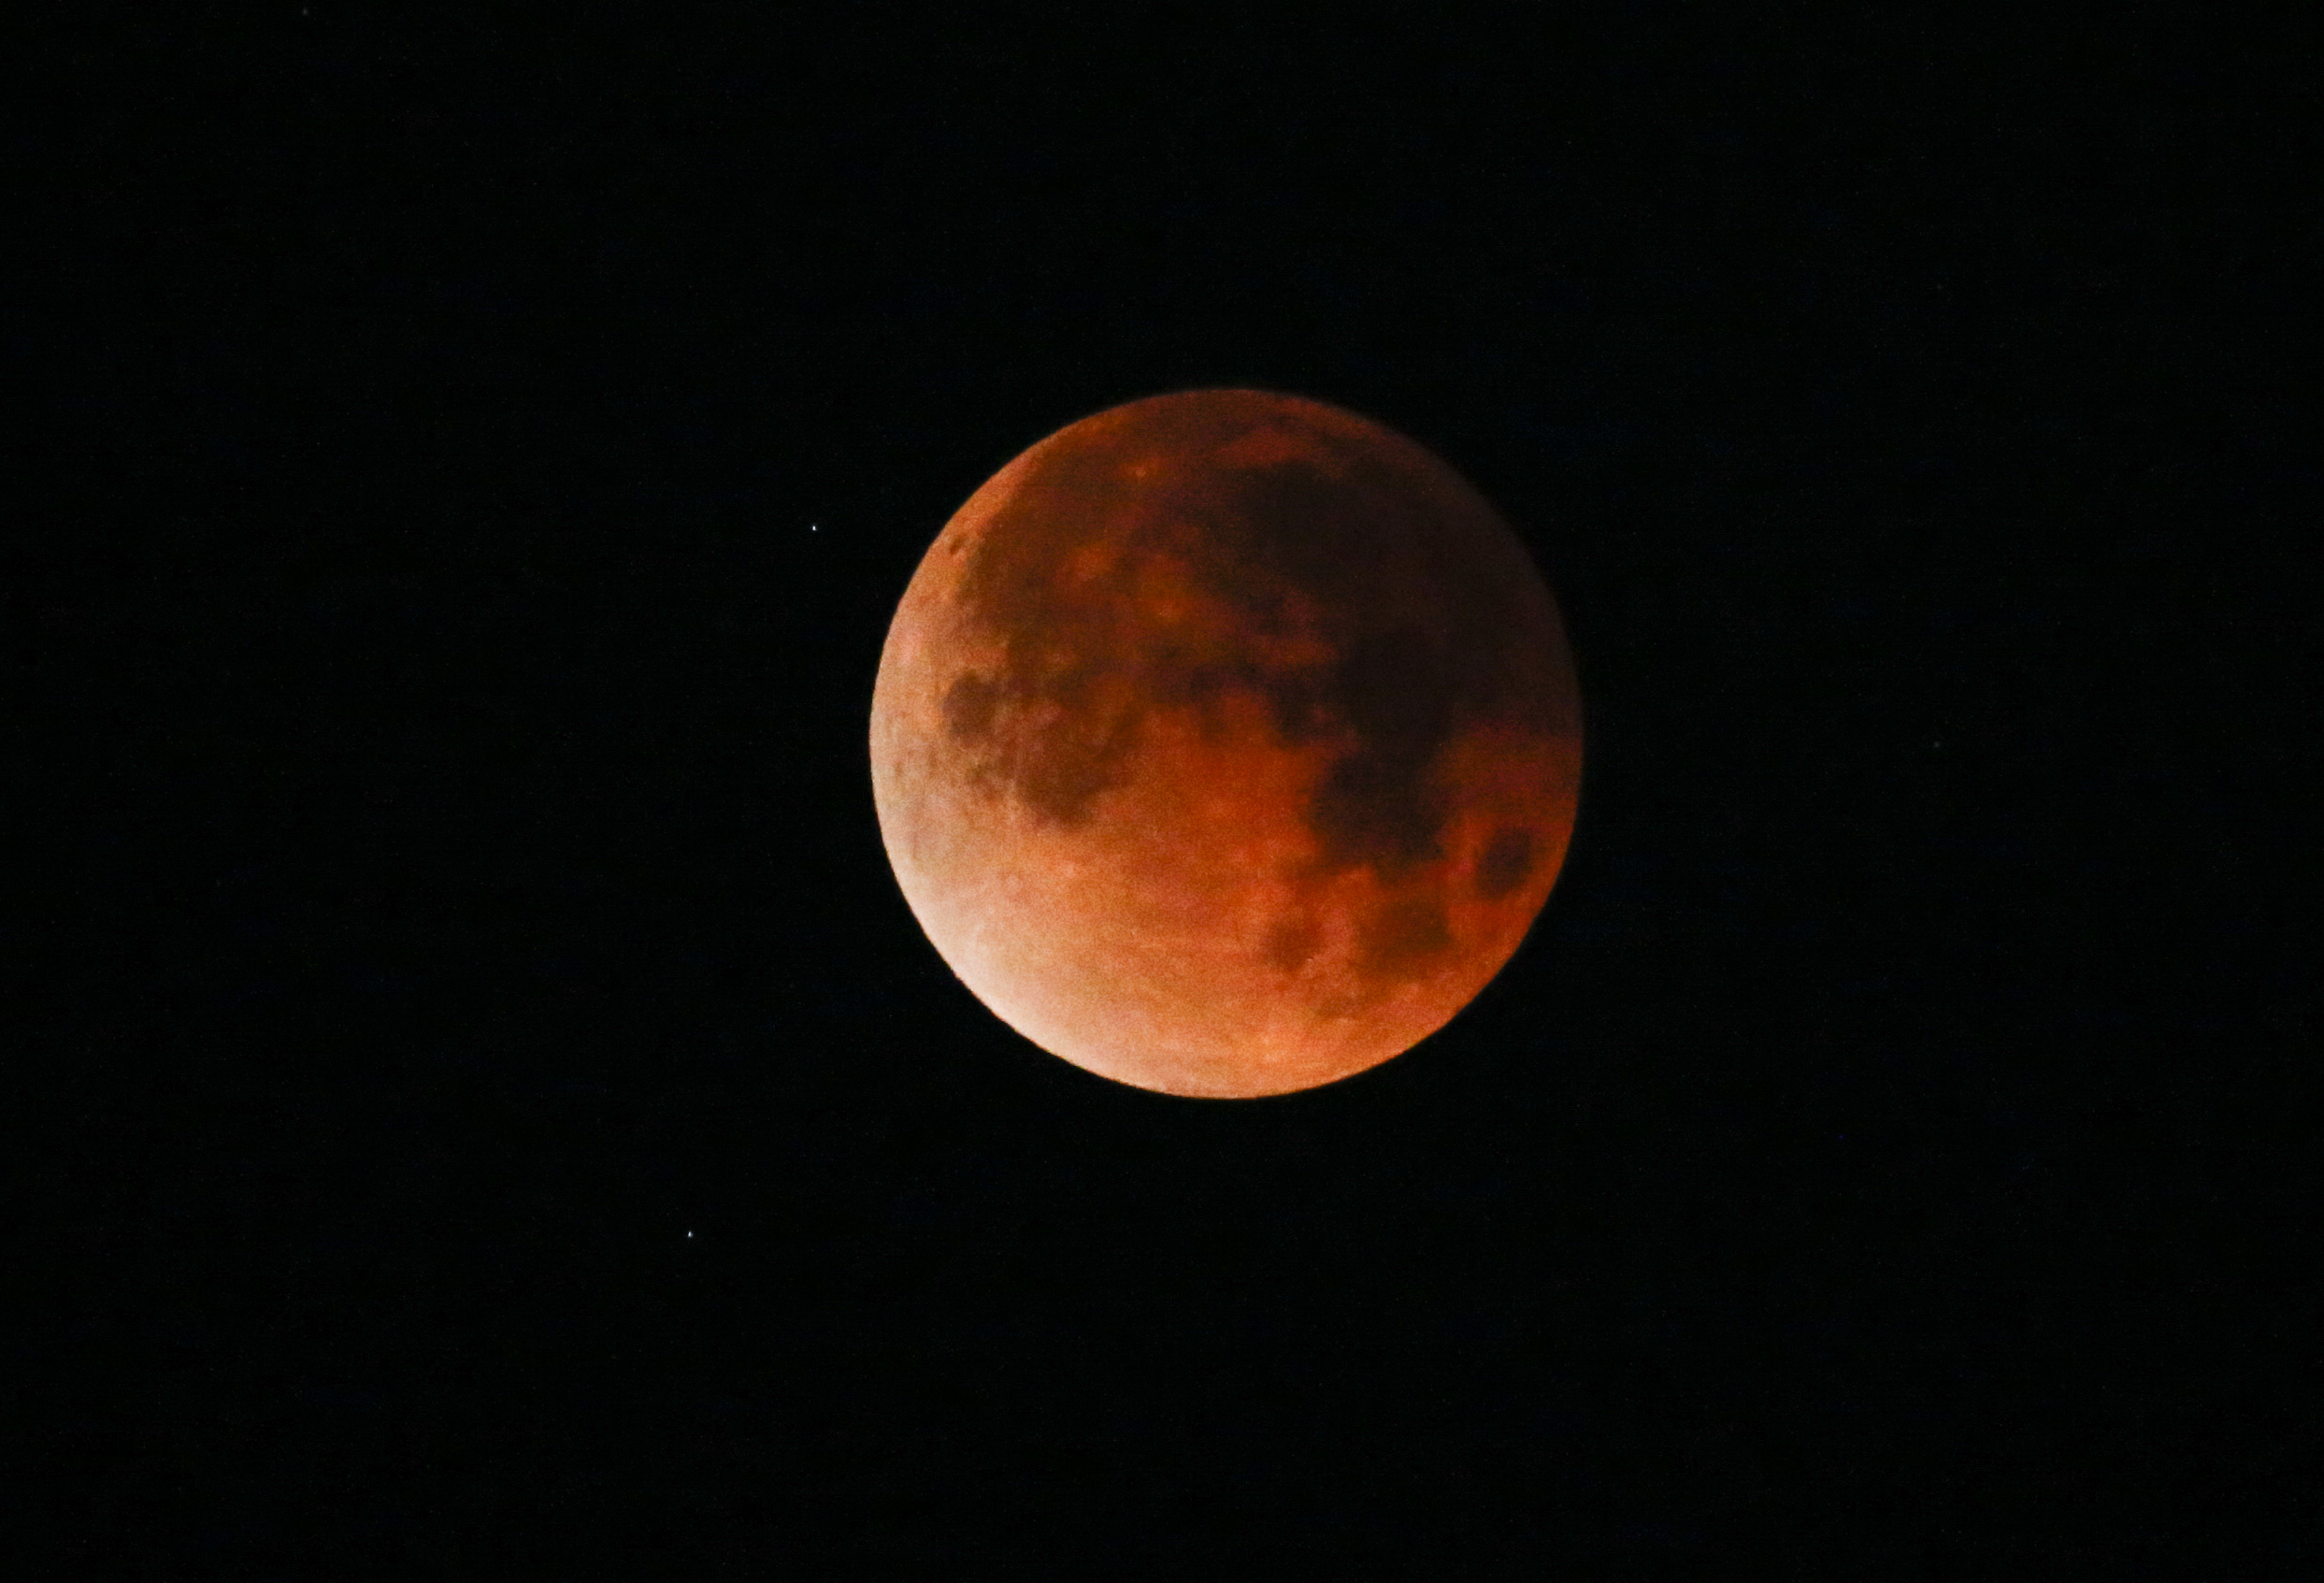 blood moon phase tonight - photo #7